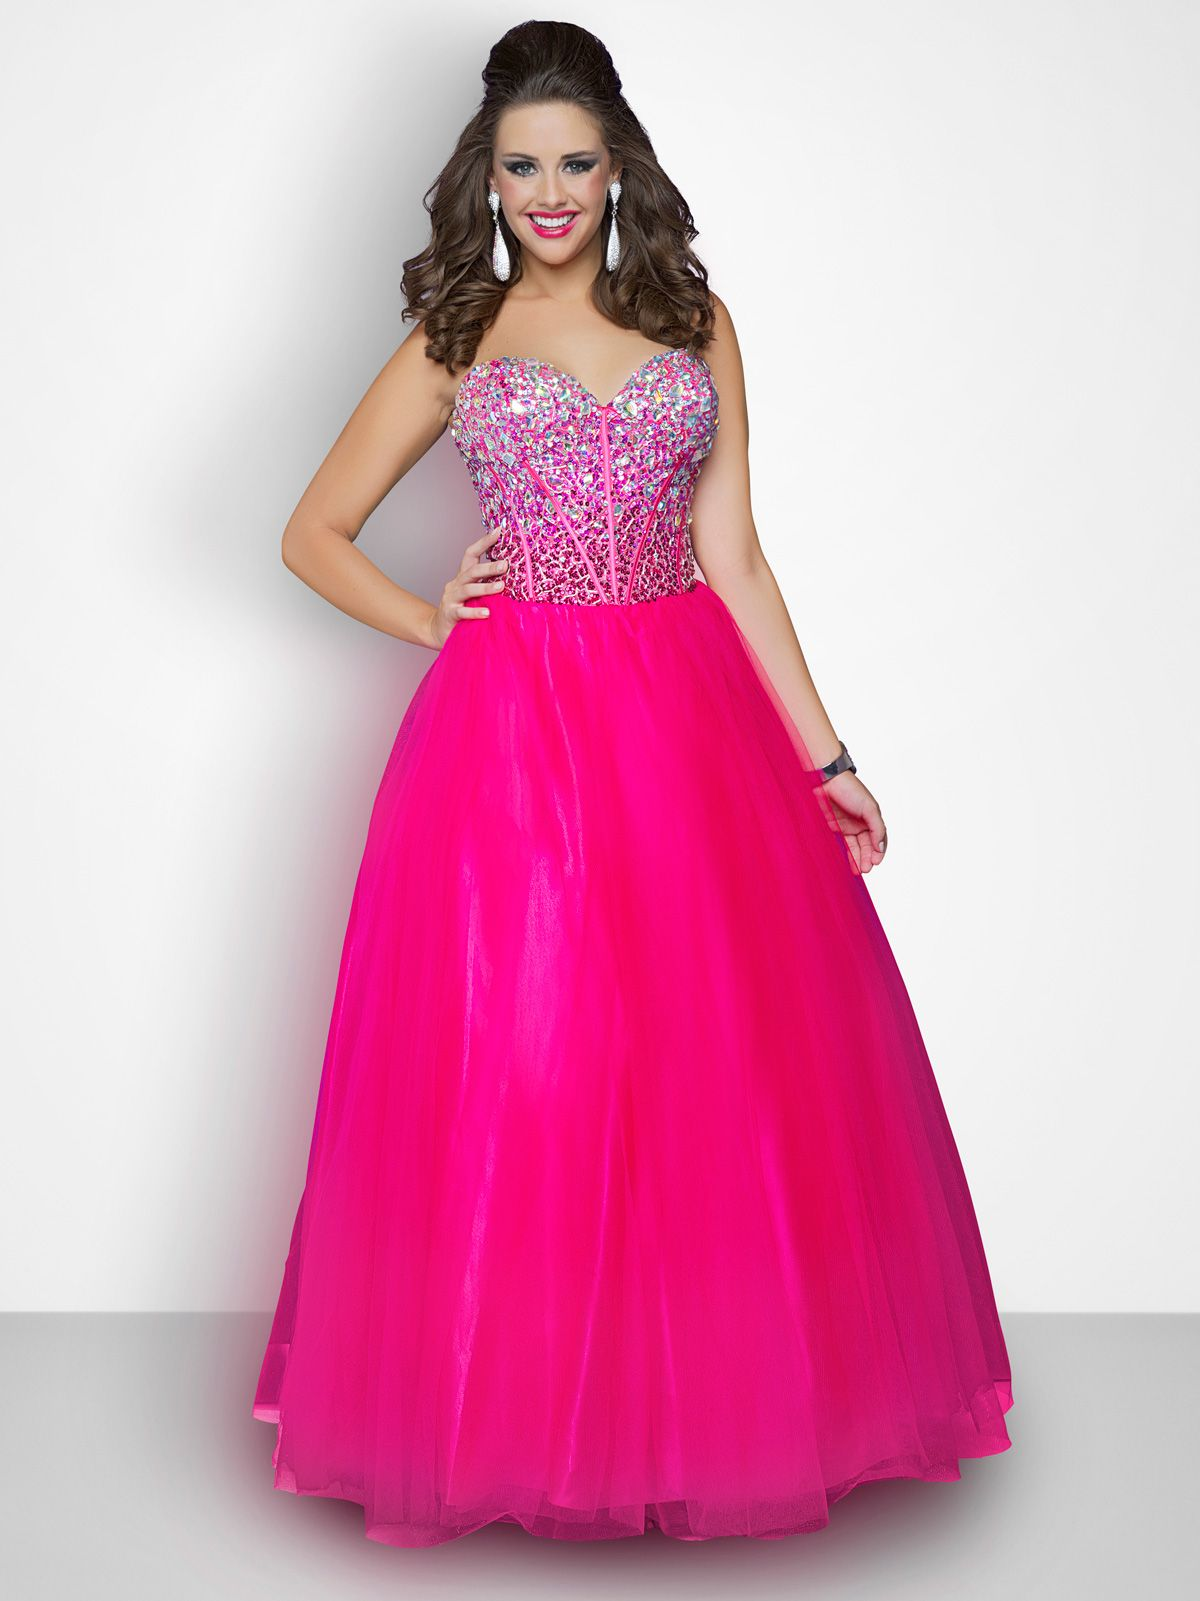 Ball gown dresses with full skirts and fitted bodices are great for ...